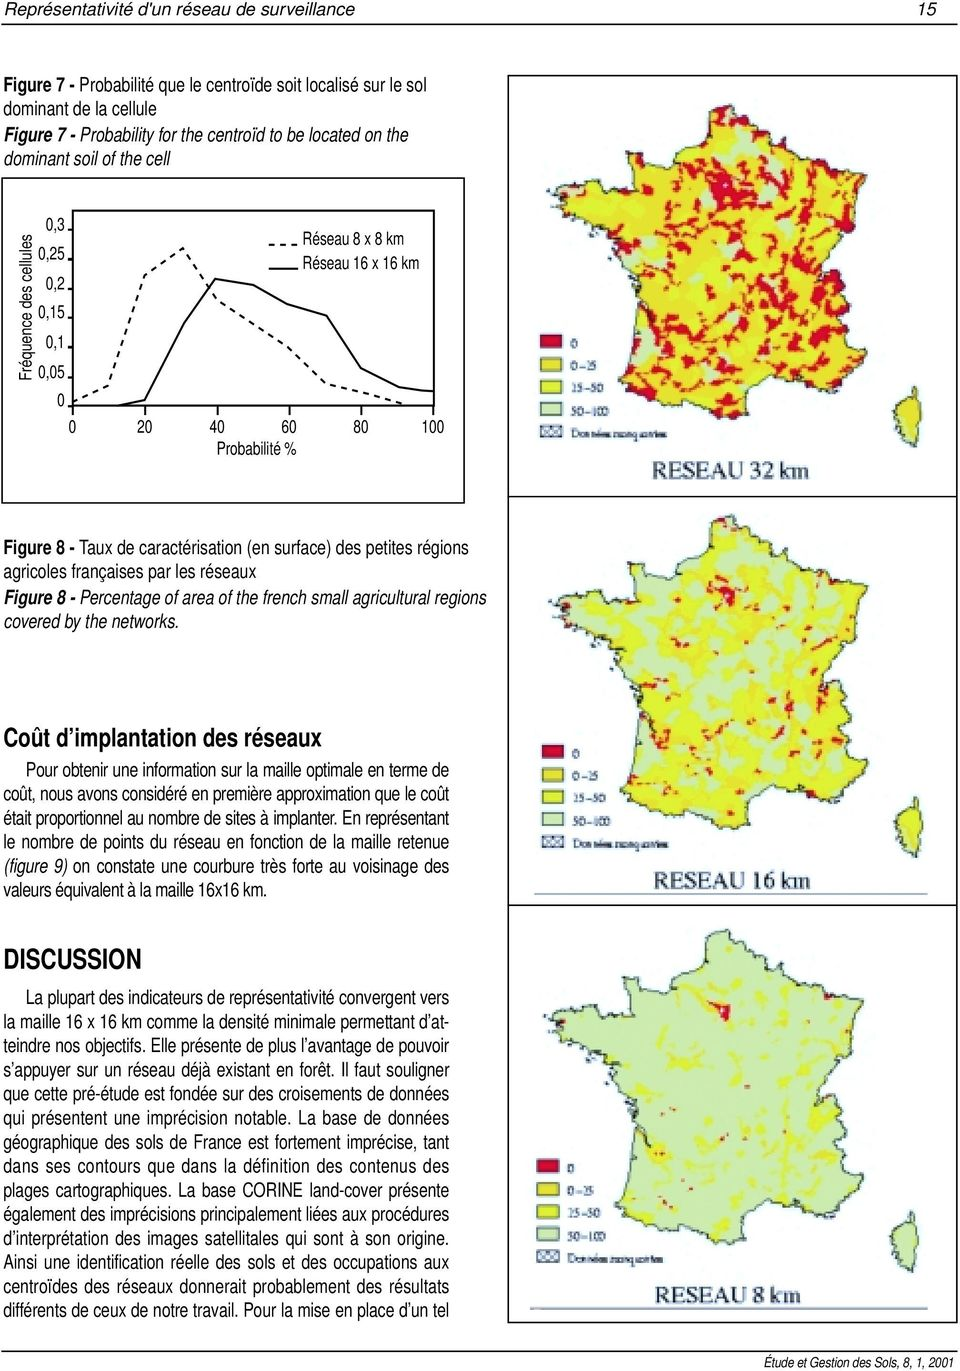 petites régions agricoles françaises par les réseaux Figure 8 - Percentage of area of the french small agricultural regions covered by the networks.